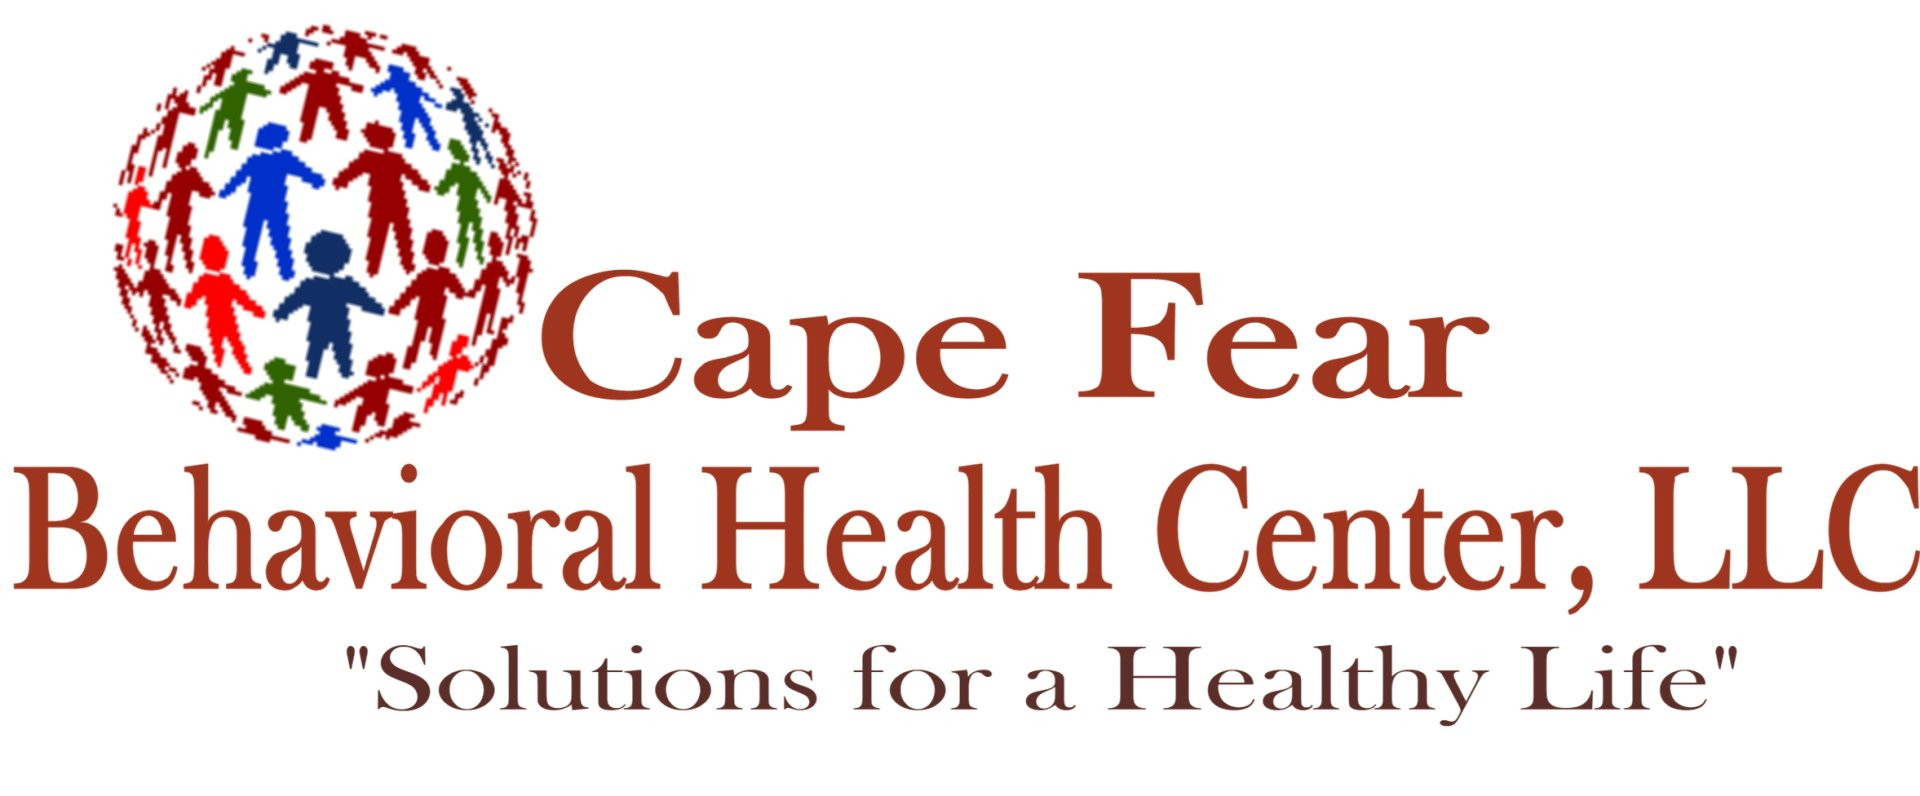 About Behavioral Health Center   Fayetteville, NC   Cape Fear Behavioral Health Center, LLC